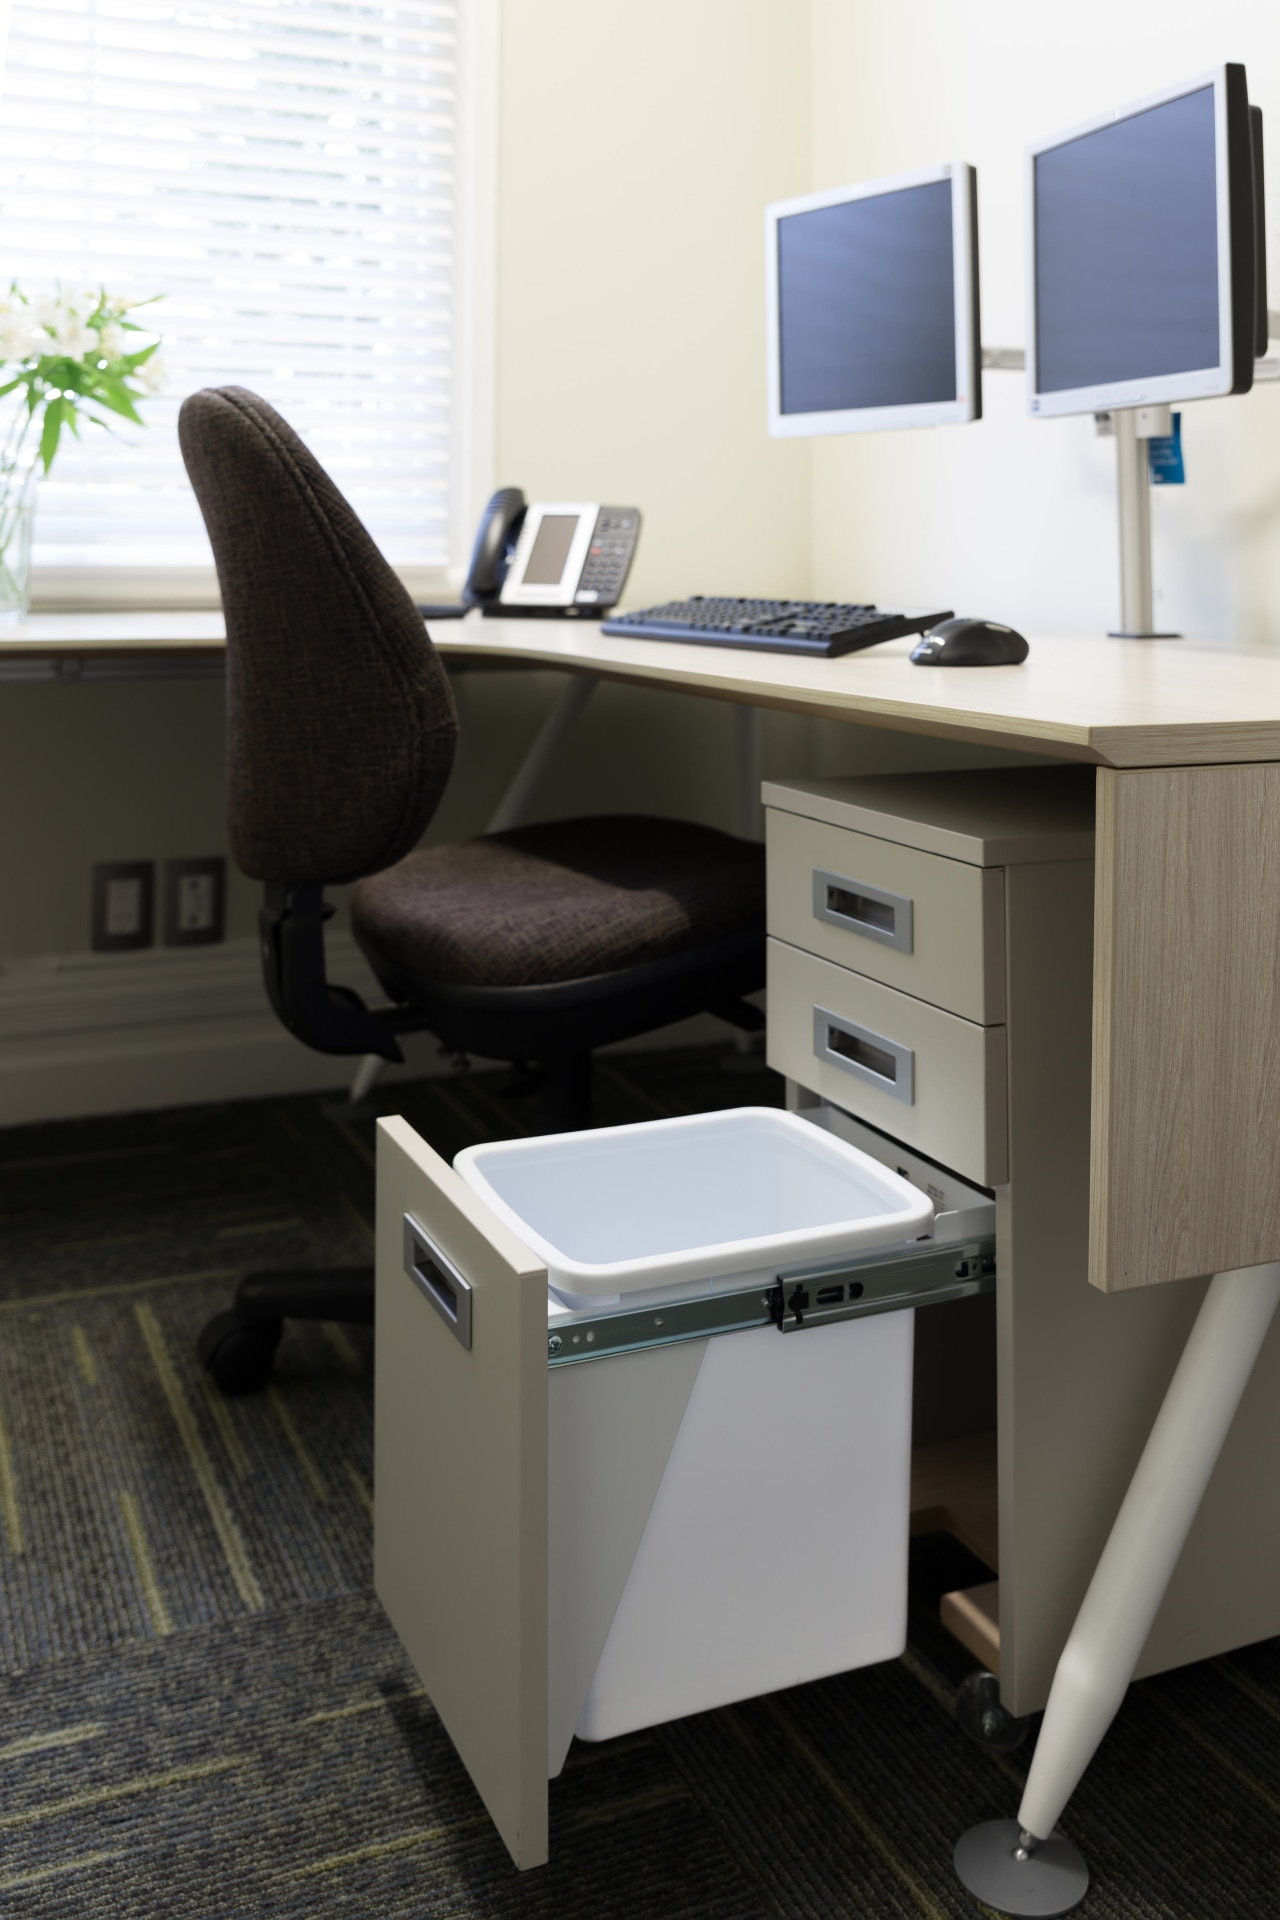 This sturdy 15L Hideaway Bin with over-extending steel desk, furniture, office, office supplies, personal computer, product, product design, black, white